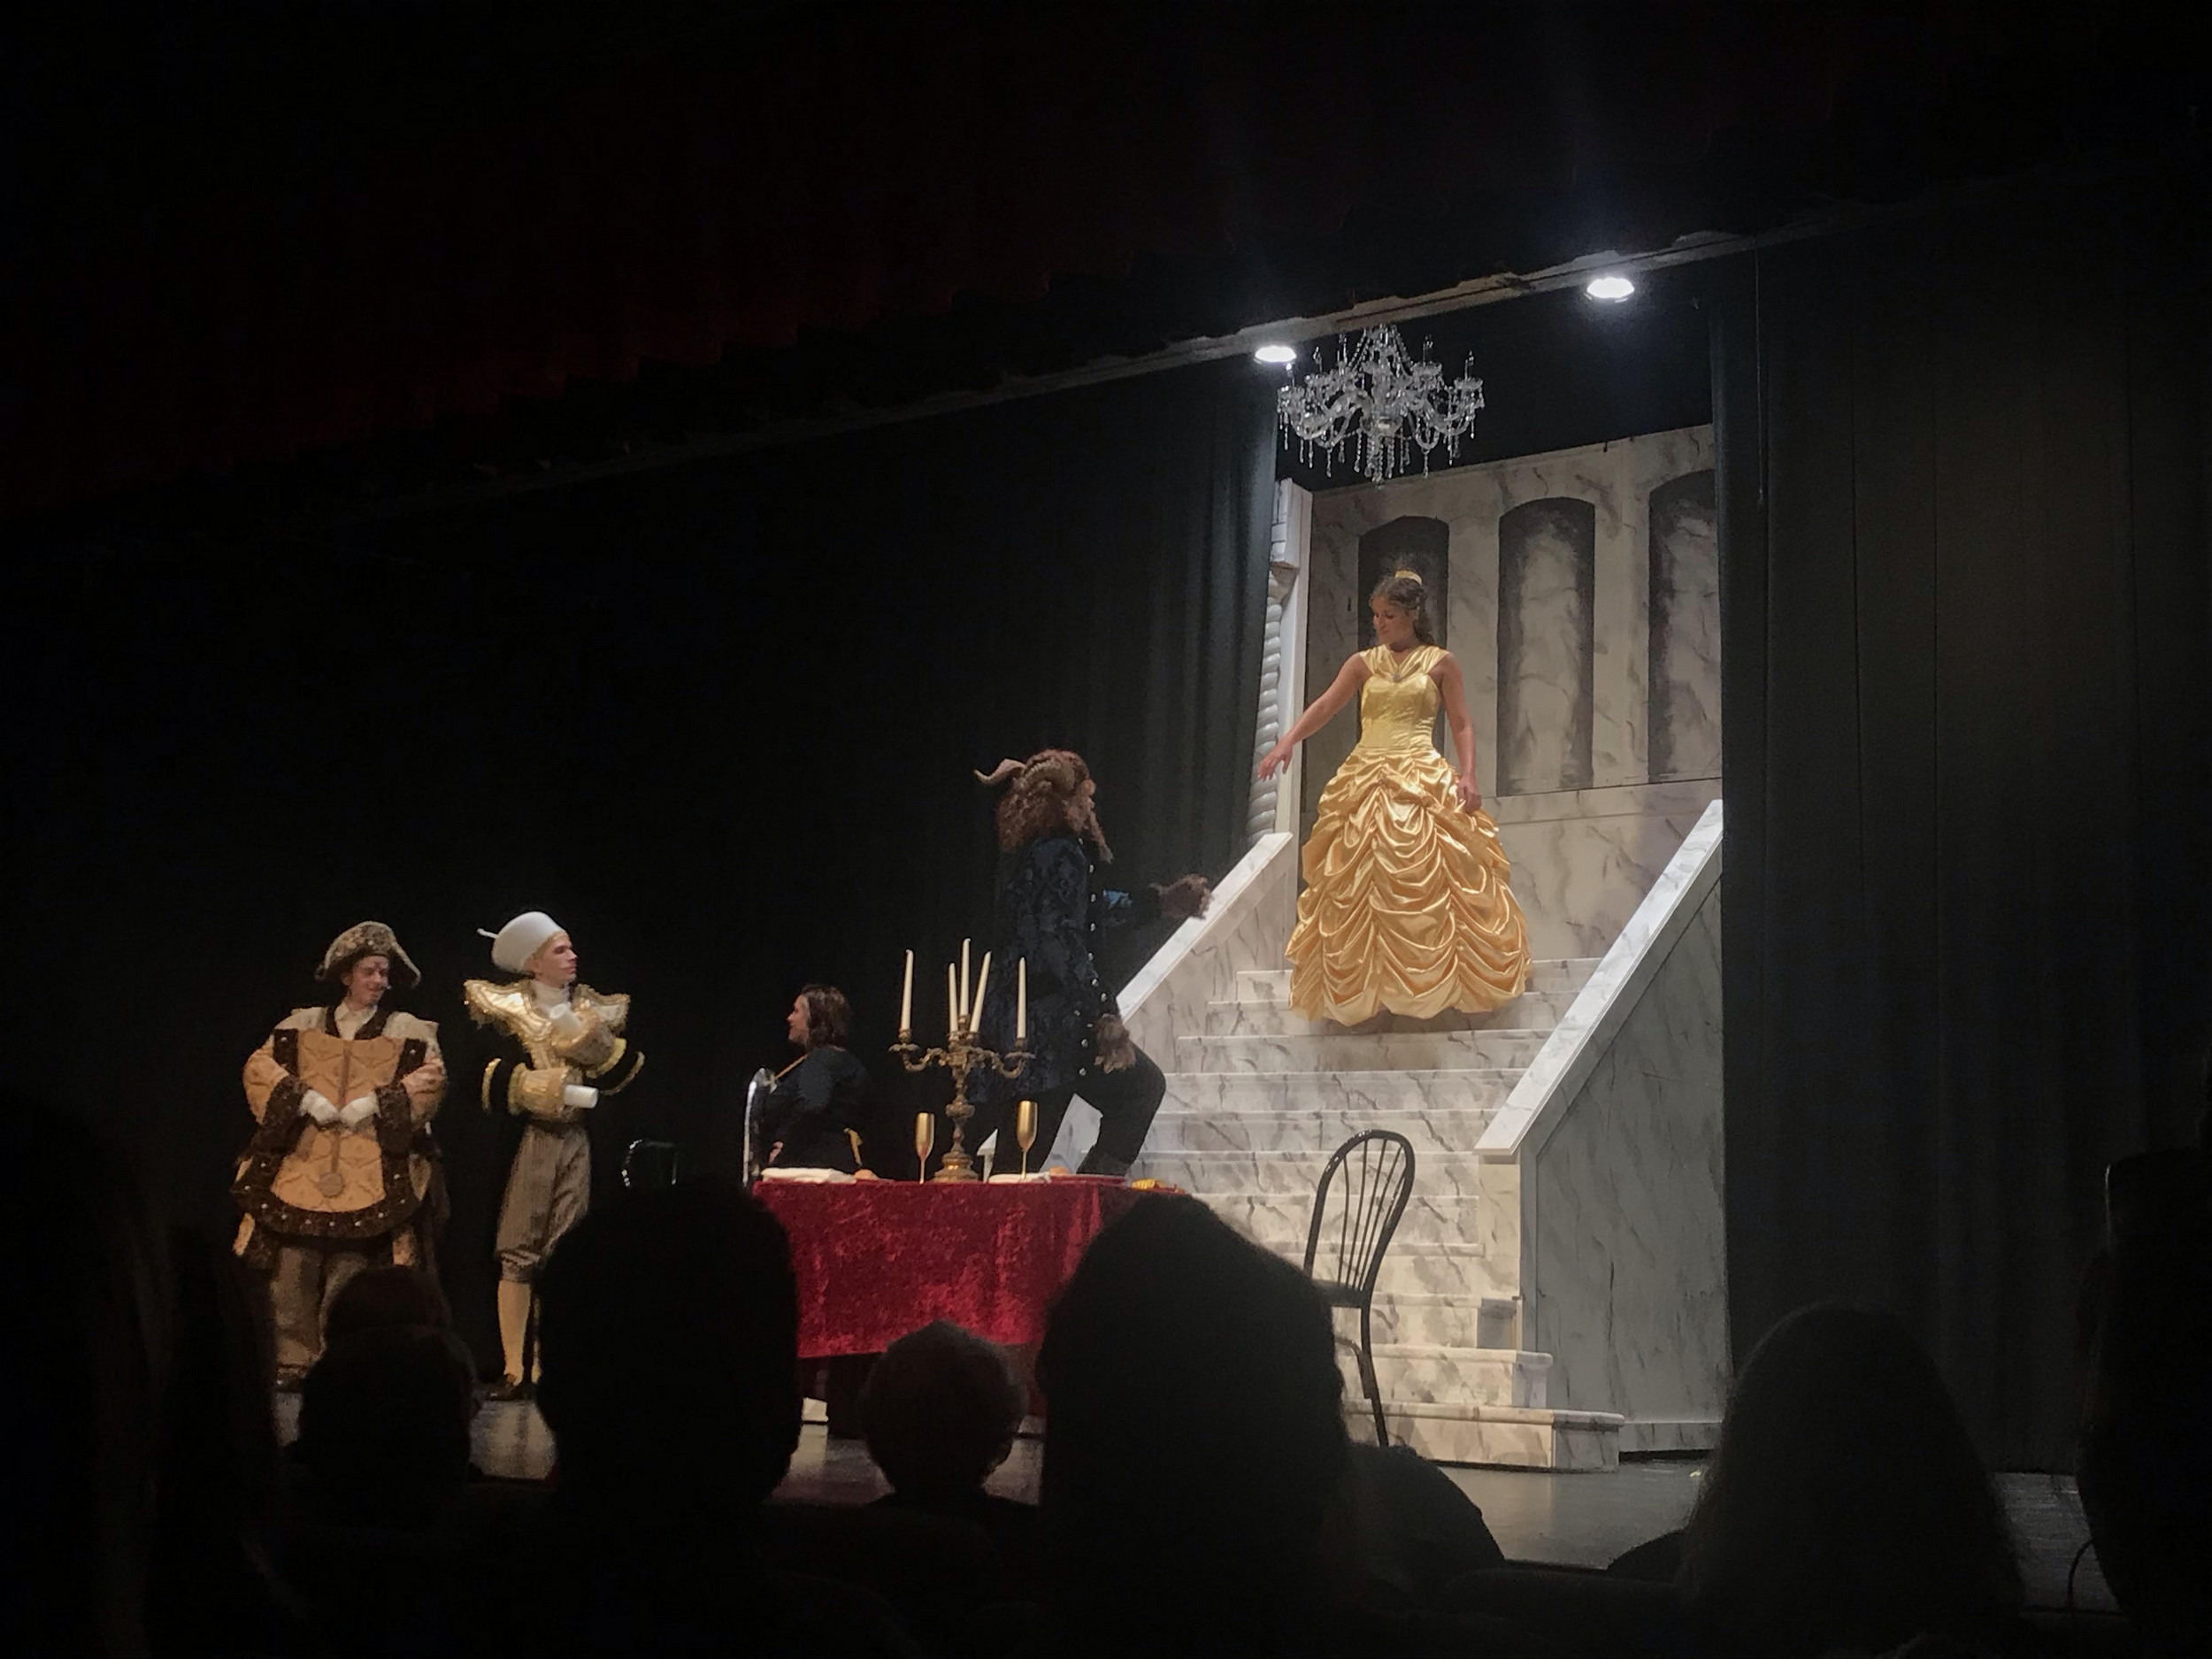 BWW Review: DISNEY'S BEAUTY AND THE BEAST at Lebanon Community Theatre